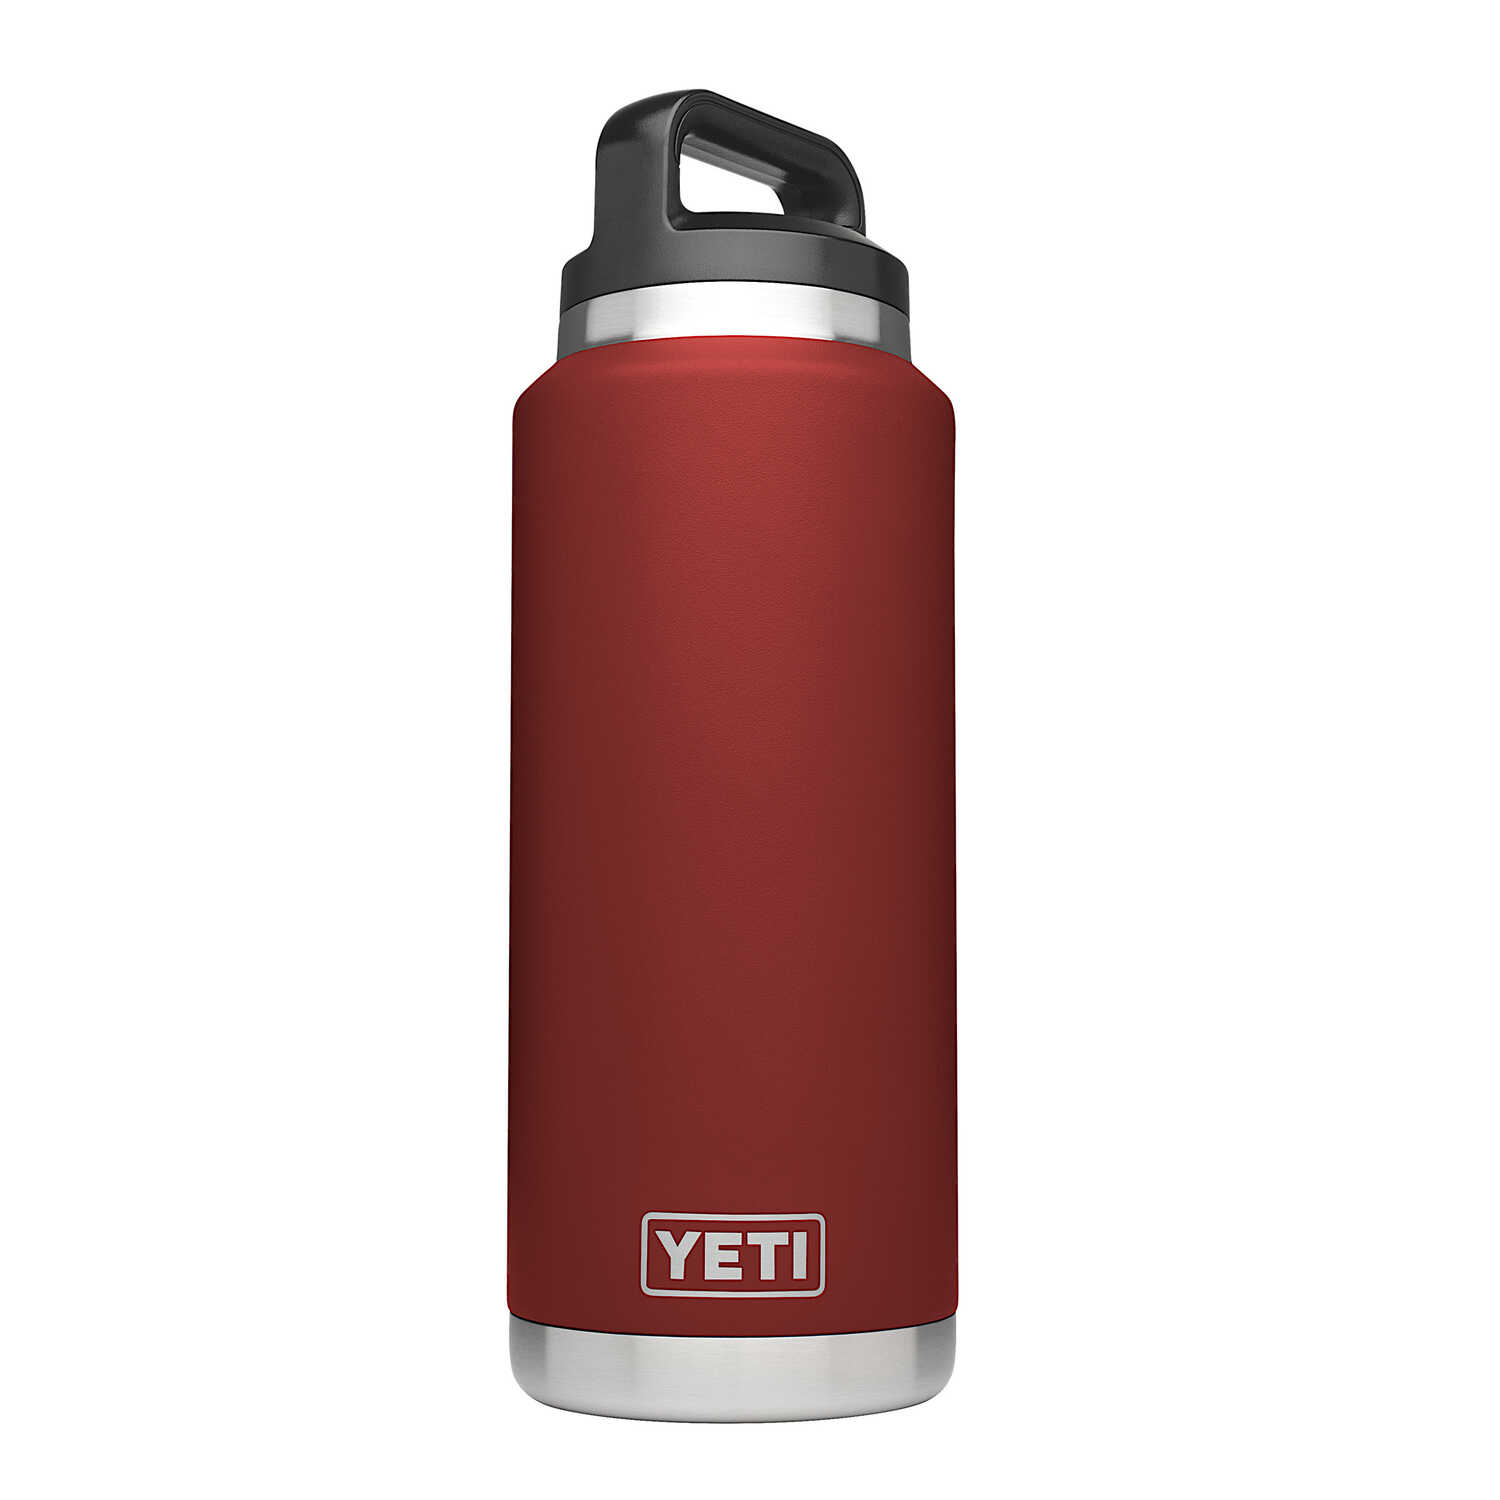 YETI  Rambler  Brick Red  Stainless Steel  Insulated Bottle  BPA Free 36 oz.